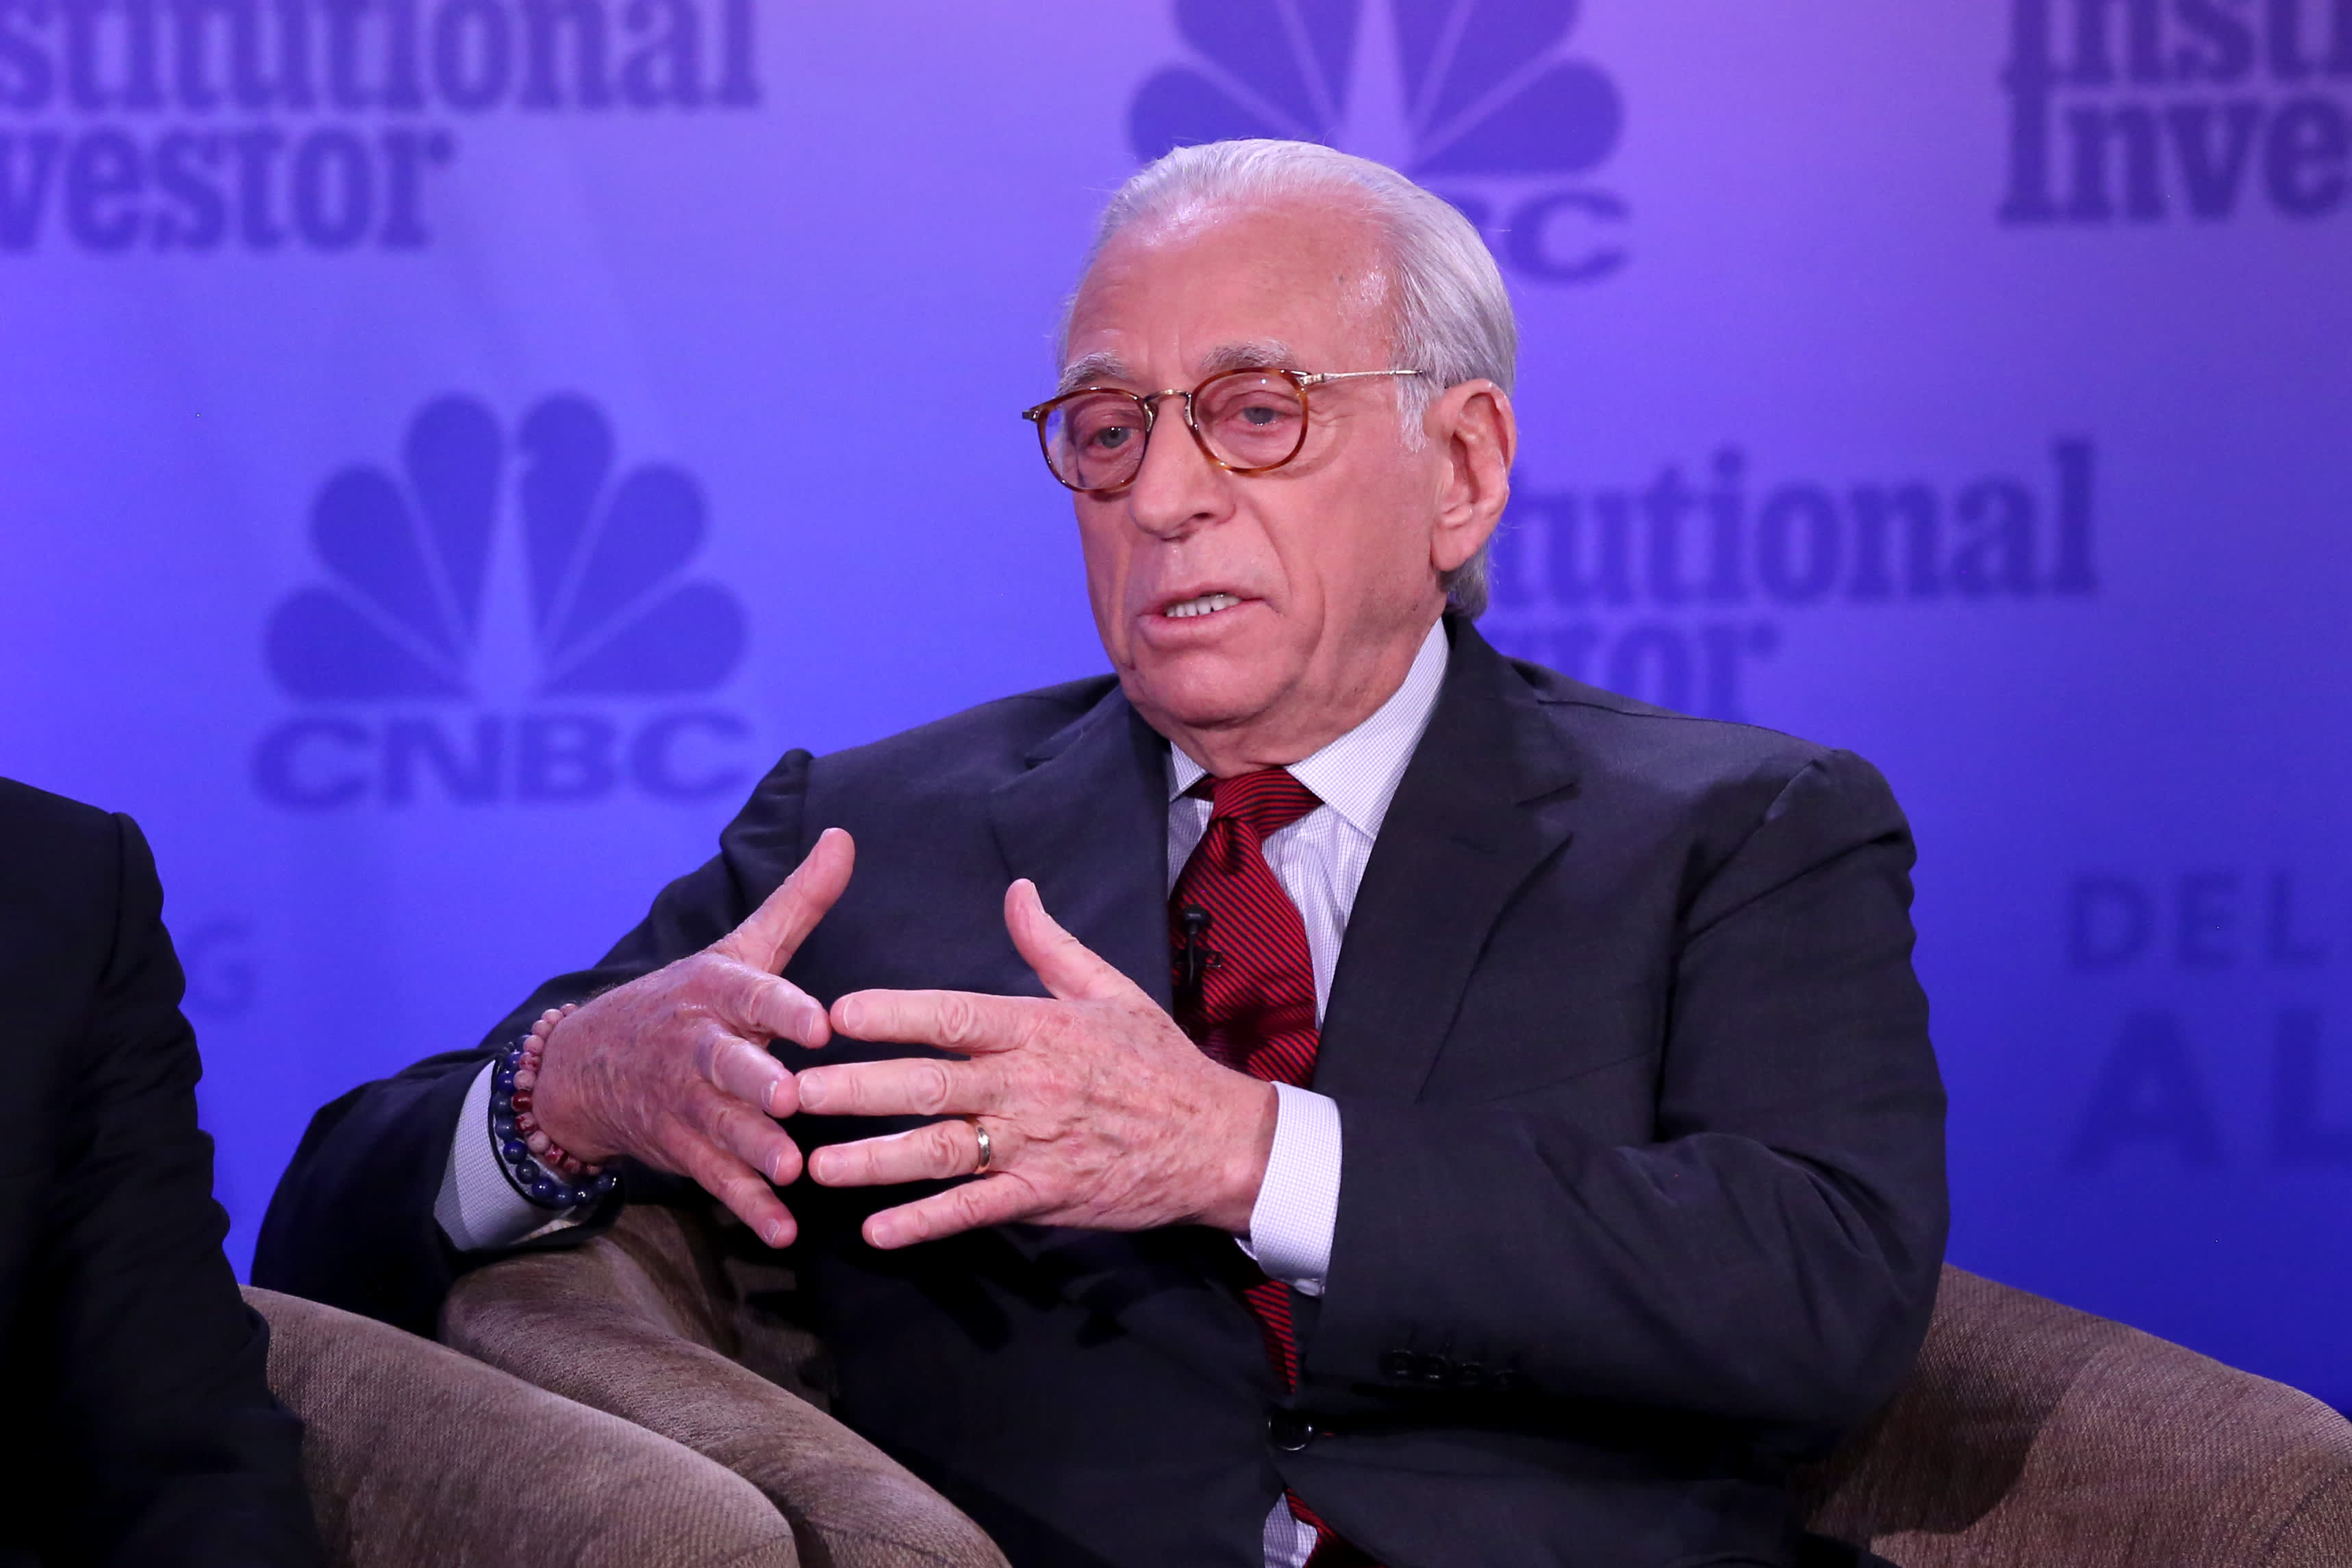 Nelson Peltz says he is sorry he voted for Trump, calls Capitol riot 'a disgrace'